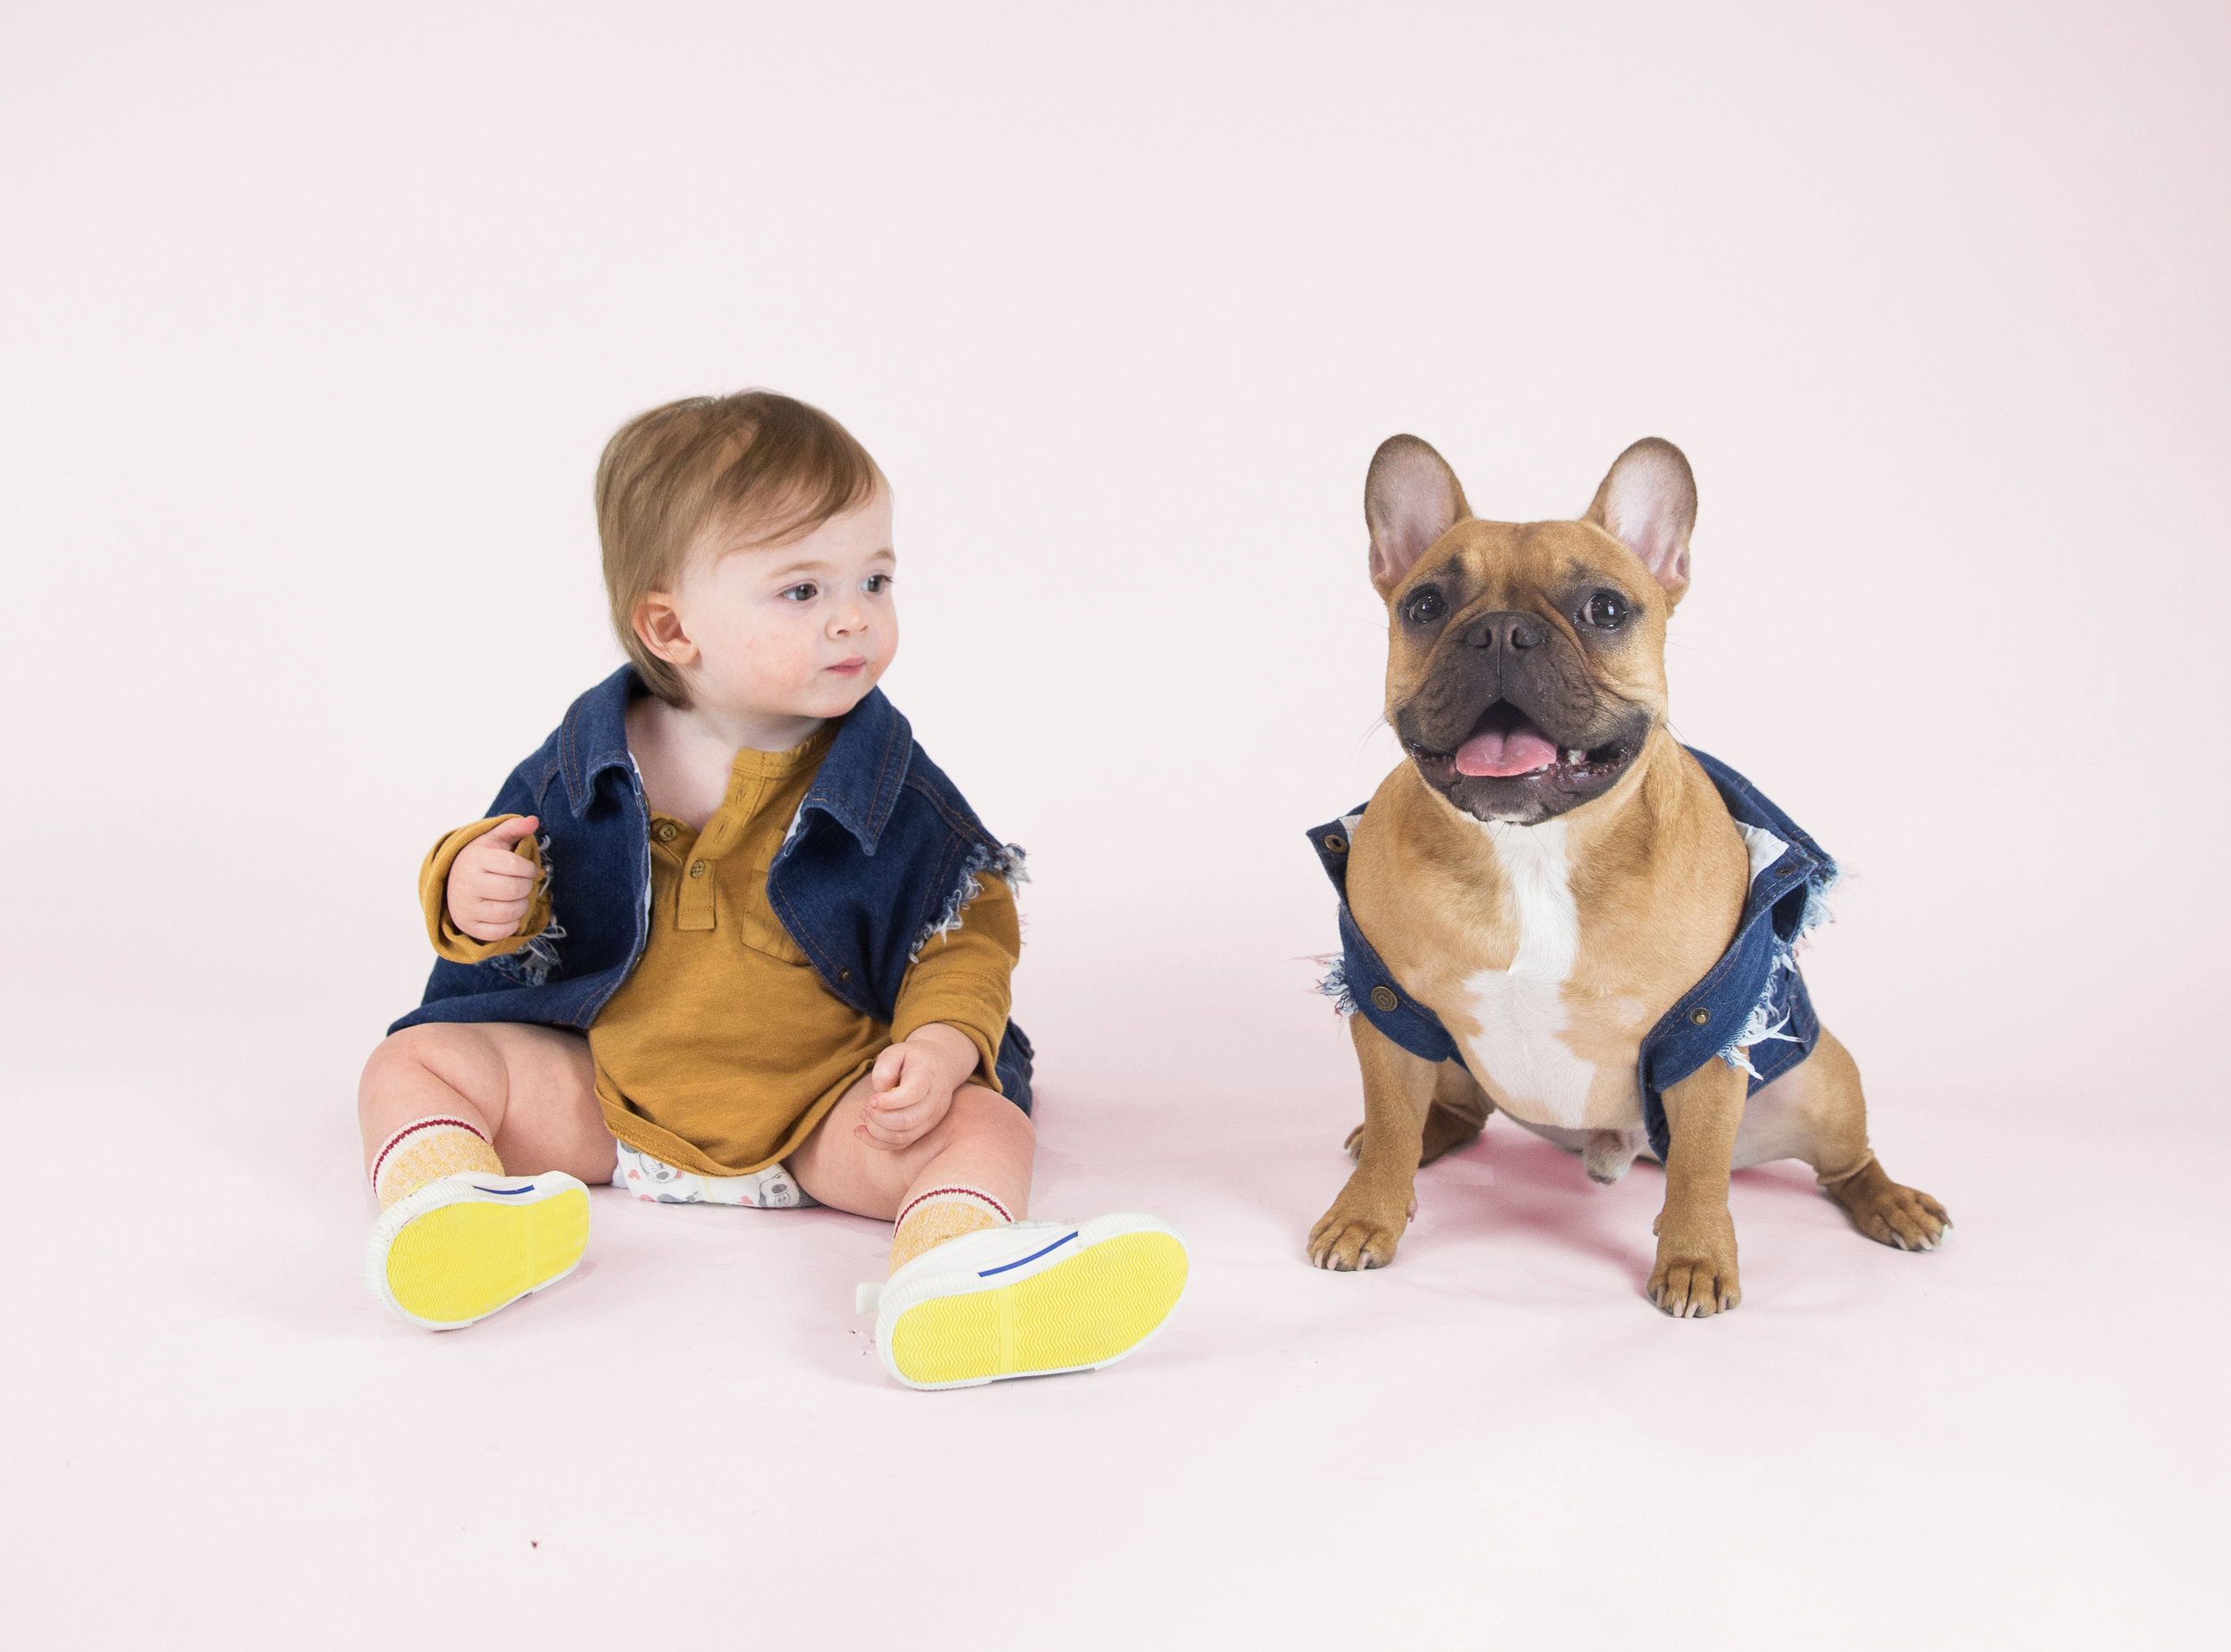 Favourite Goodboy Swag - The best thing about having a dog and baby who are about the same size is you can dress them in matching outfits. Its like having twins… but much, much better. Their favourite matching outfit to rock is the Pethaus Raw Denim Vest. Too cool for school.